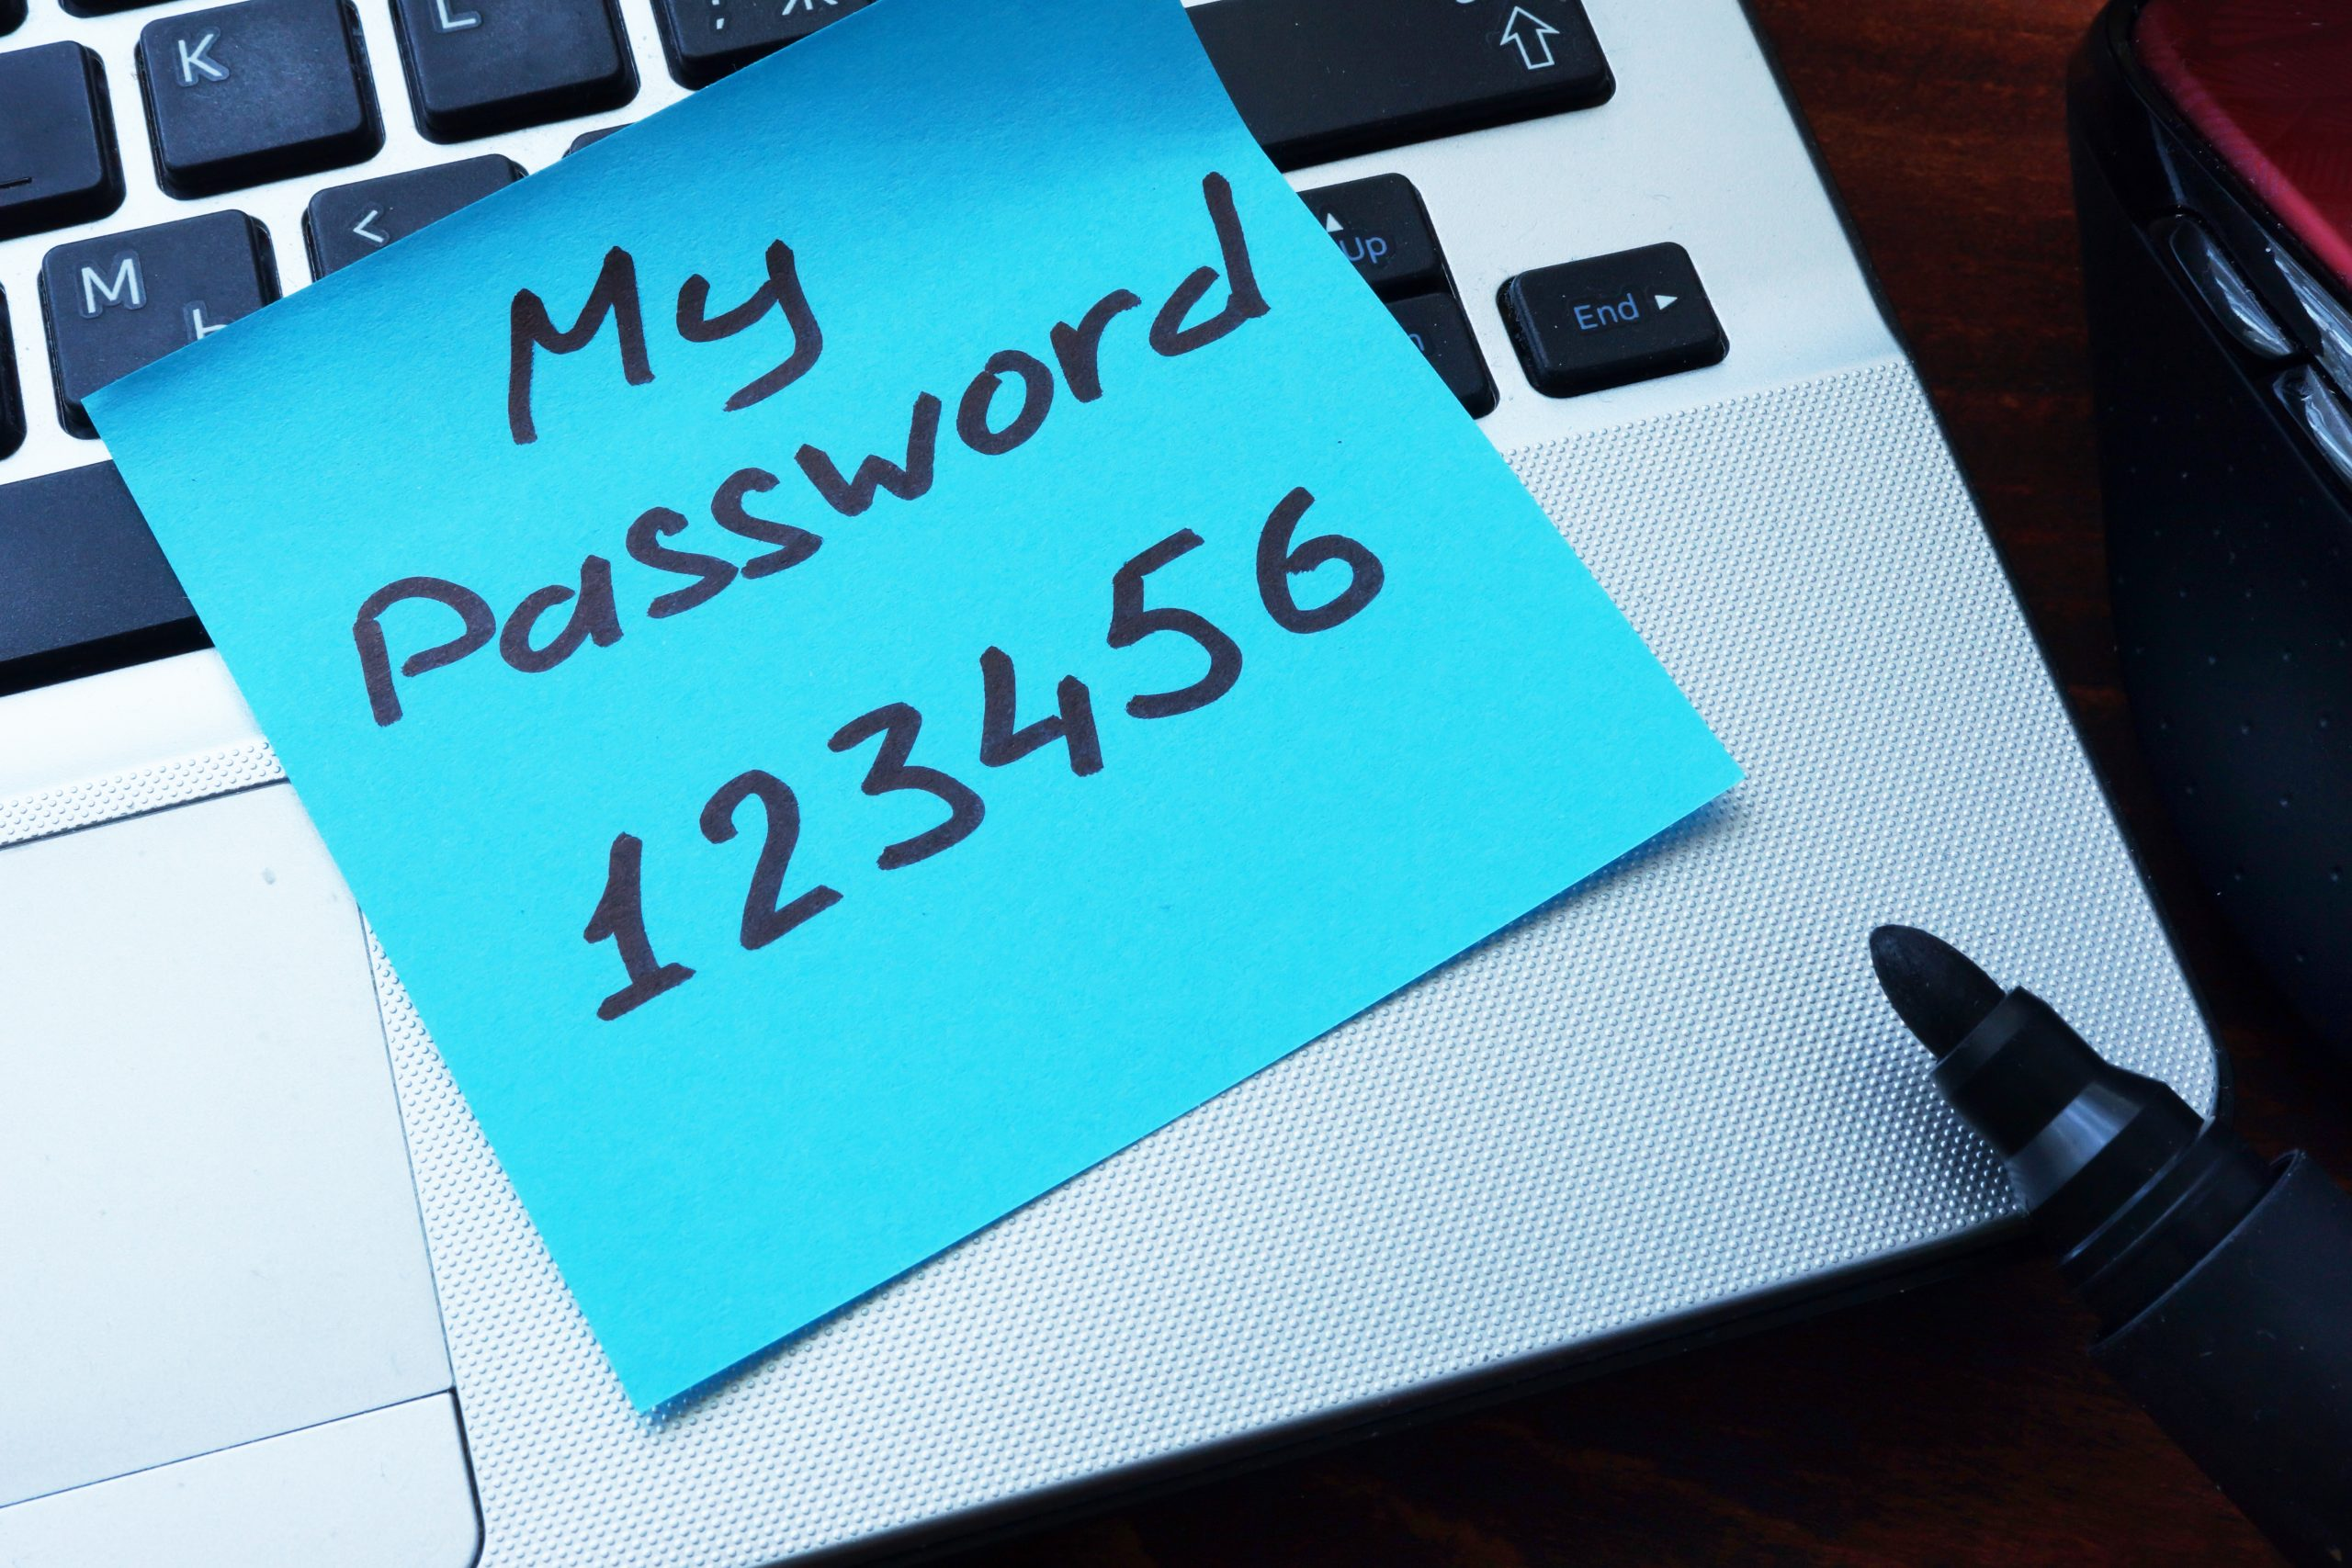 What constitutes a good password and why it is important to have one?